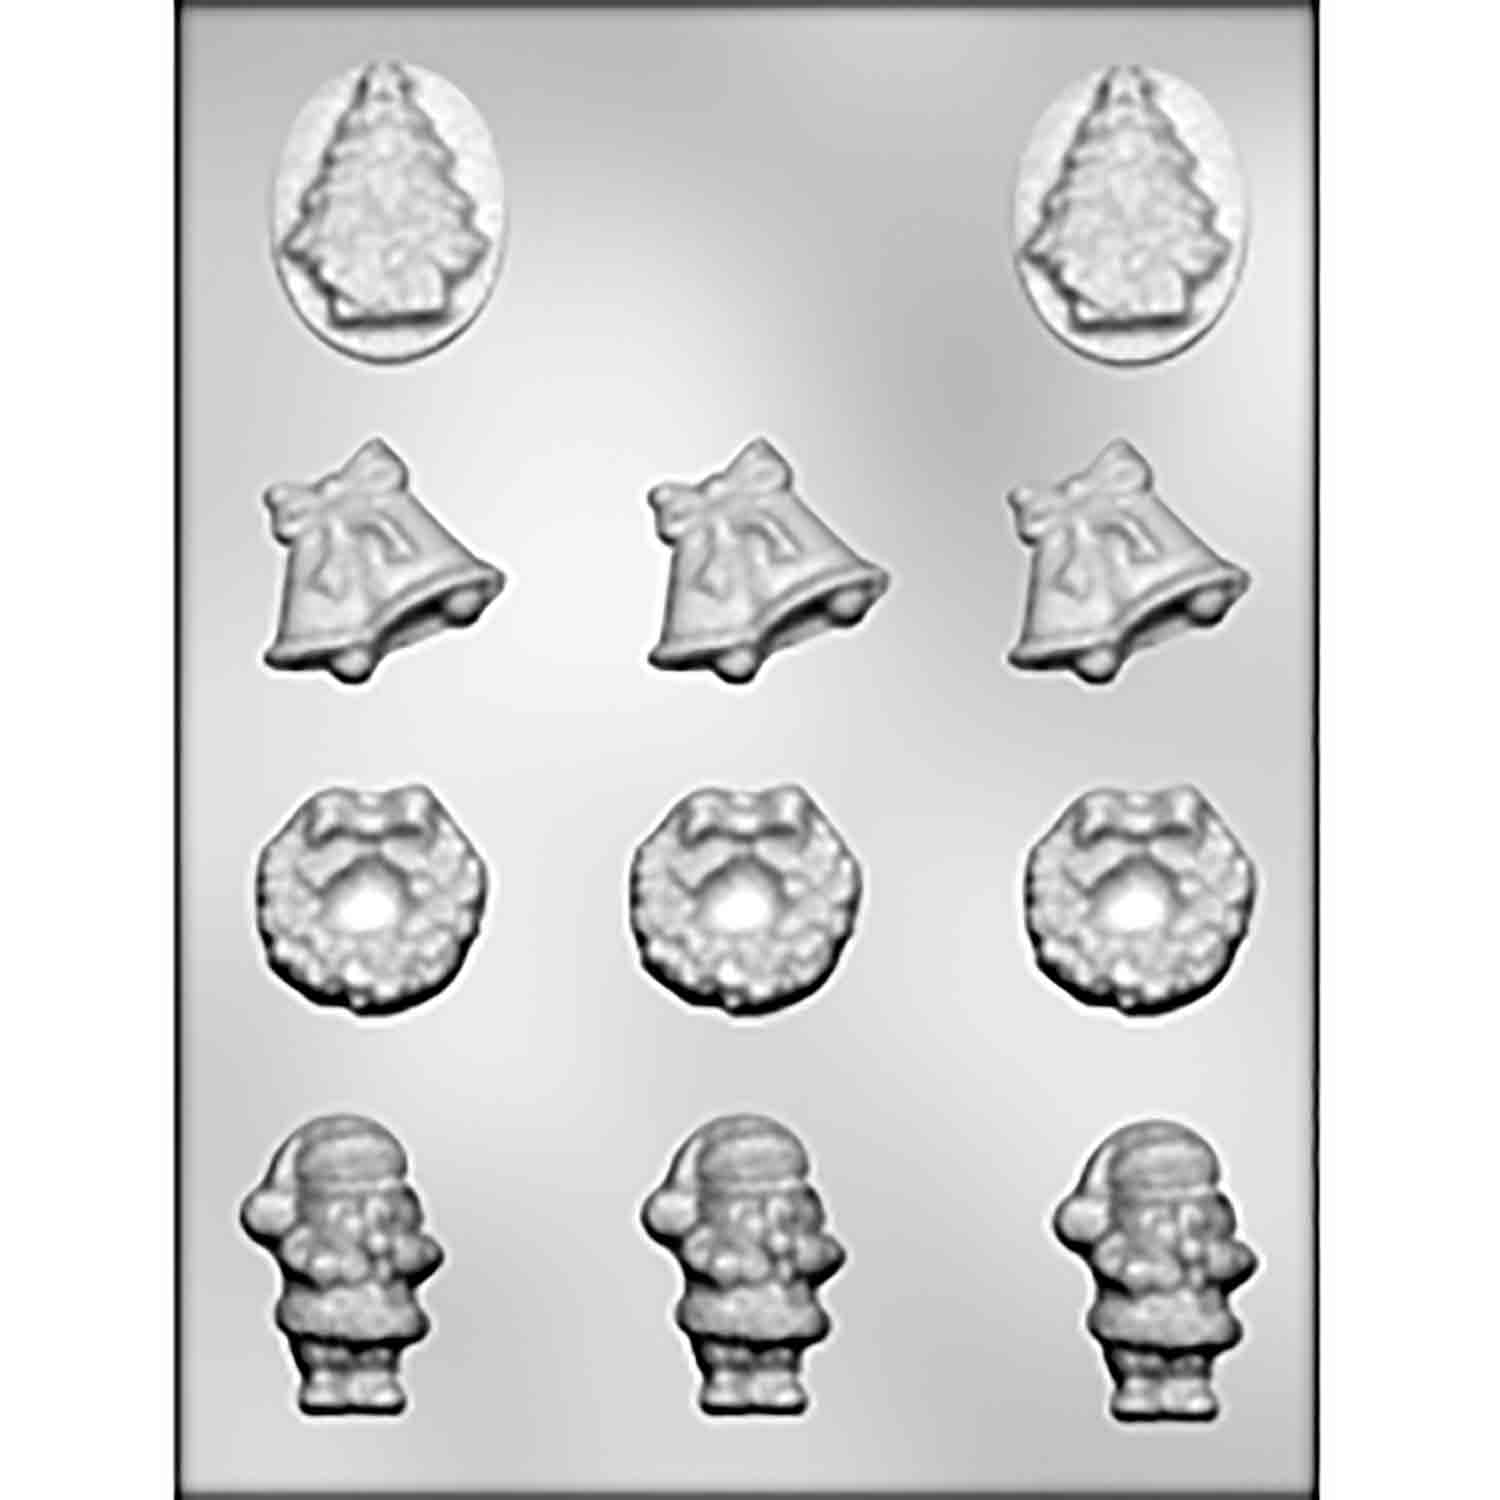 Wreath, Santa, Bells & Tree Chocolate Candy Mold